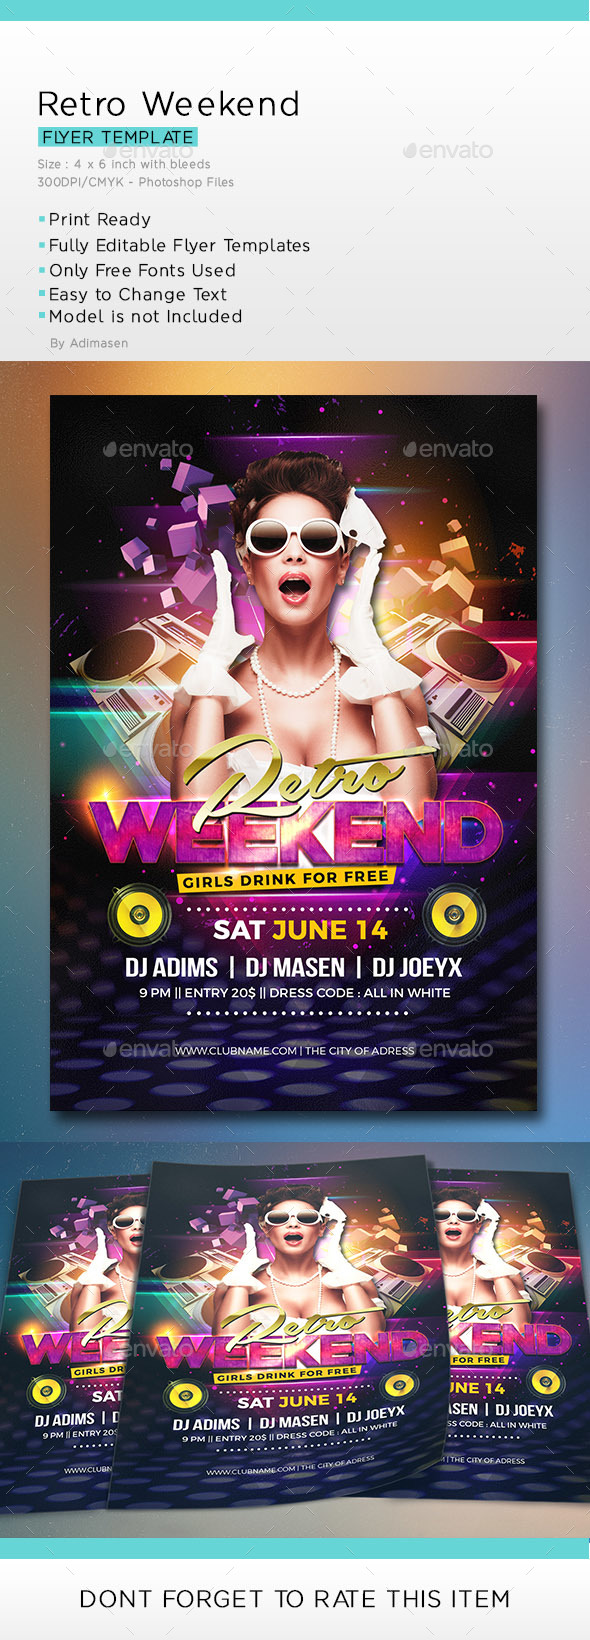 Retro Weekend Flyer